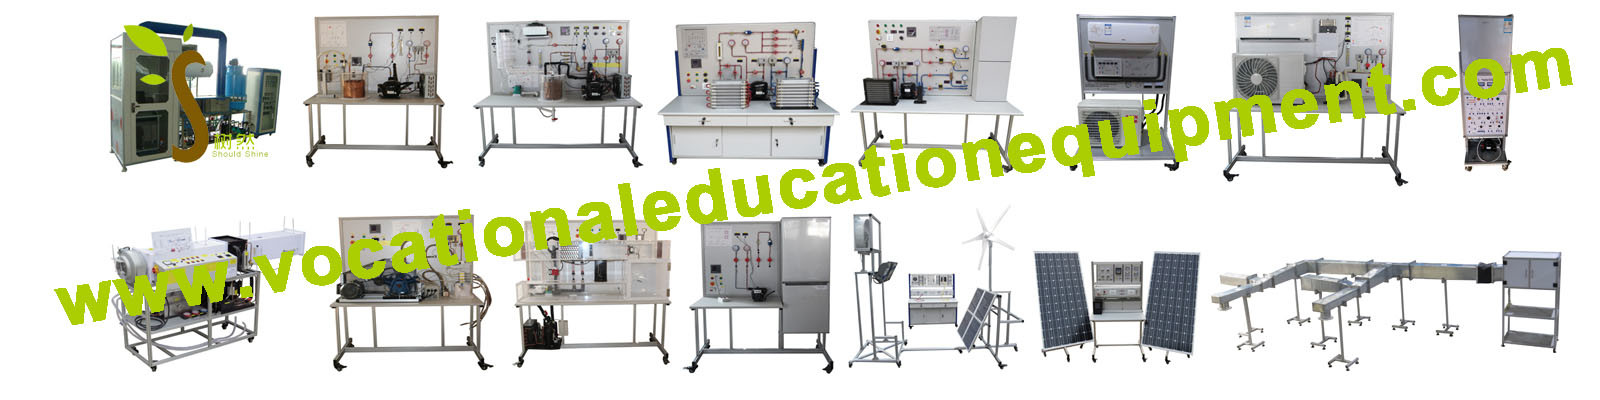 Electrical Training Equipment